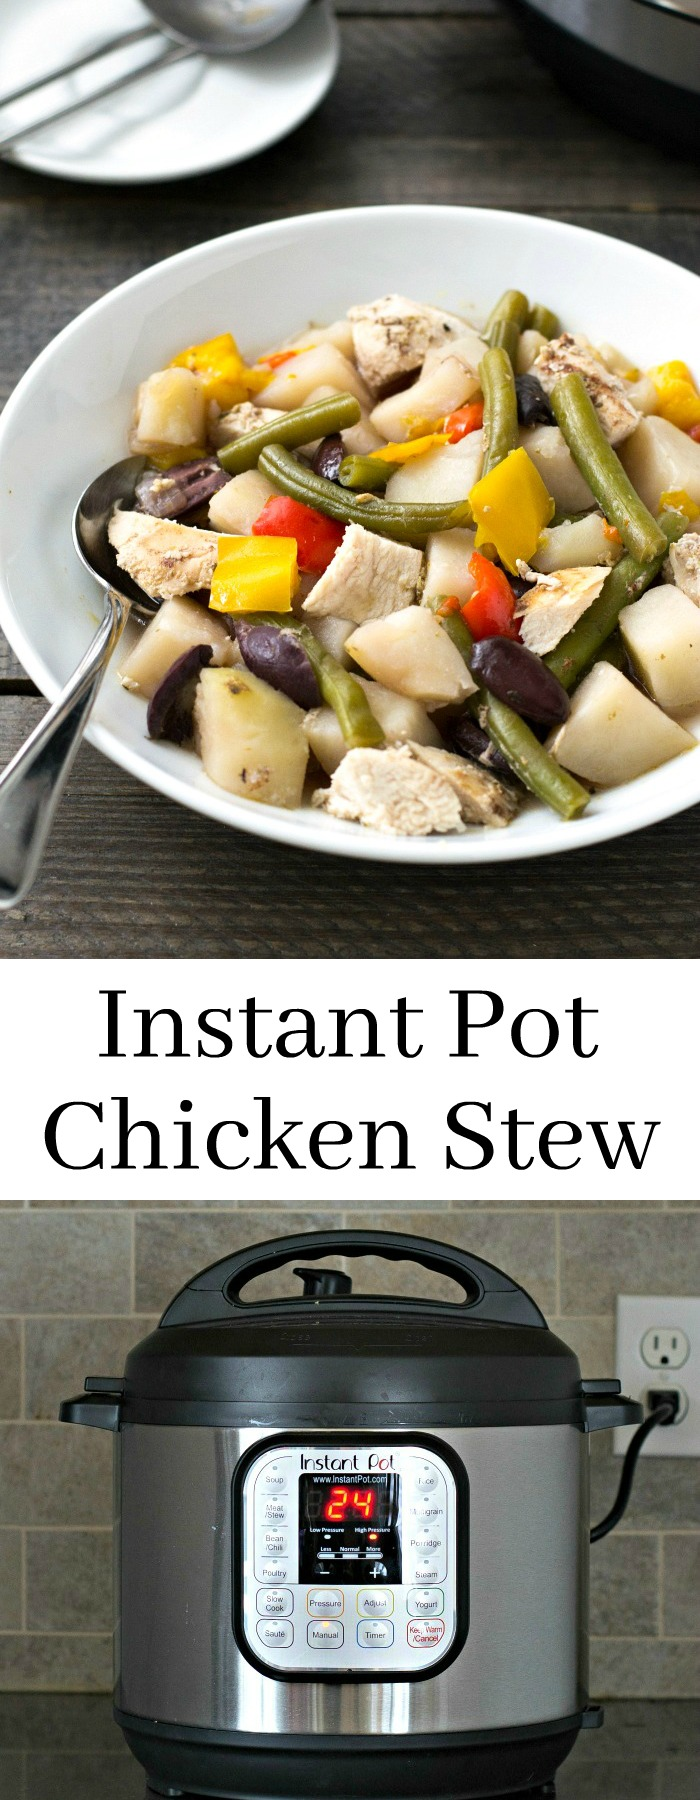 This Instant Pot Chicken Stew is a delicious blend of Mediterranean flavors. It's such an easy, healthy recipe for a chilly night. Recipe from realfoodrealdeals.com